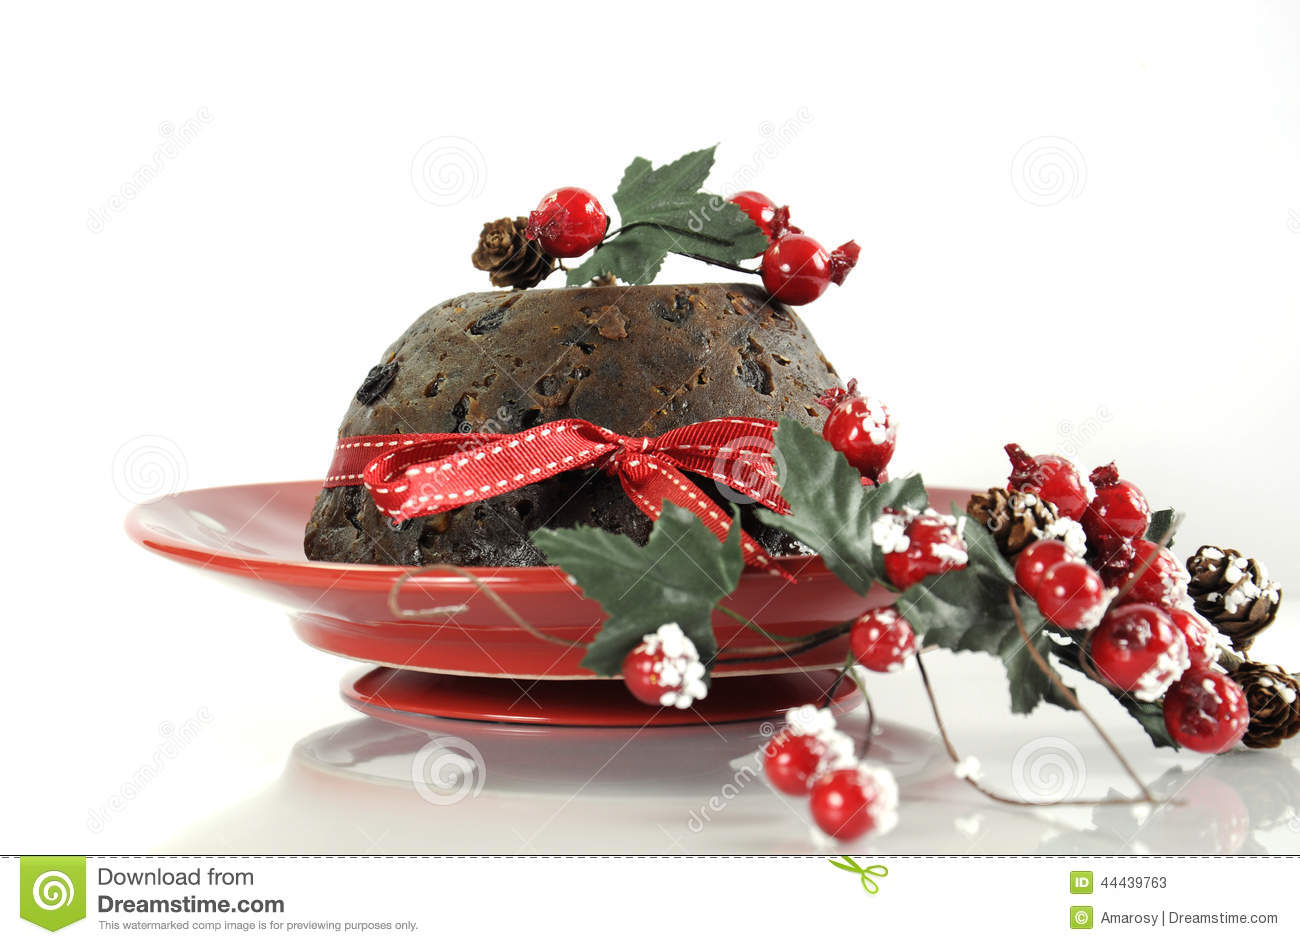 ... style Christmas Plum Pudding dessert on white table background